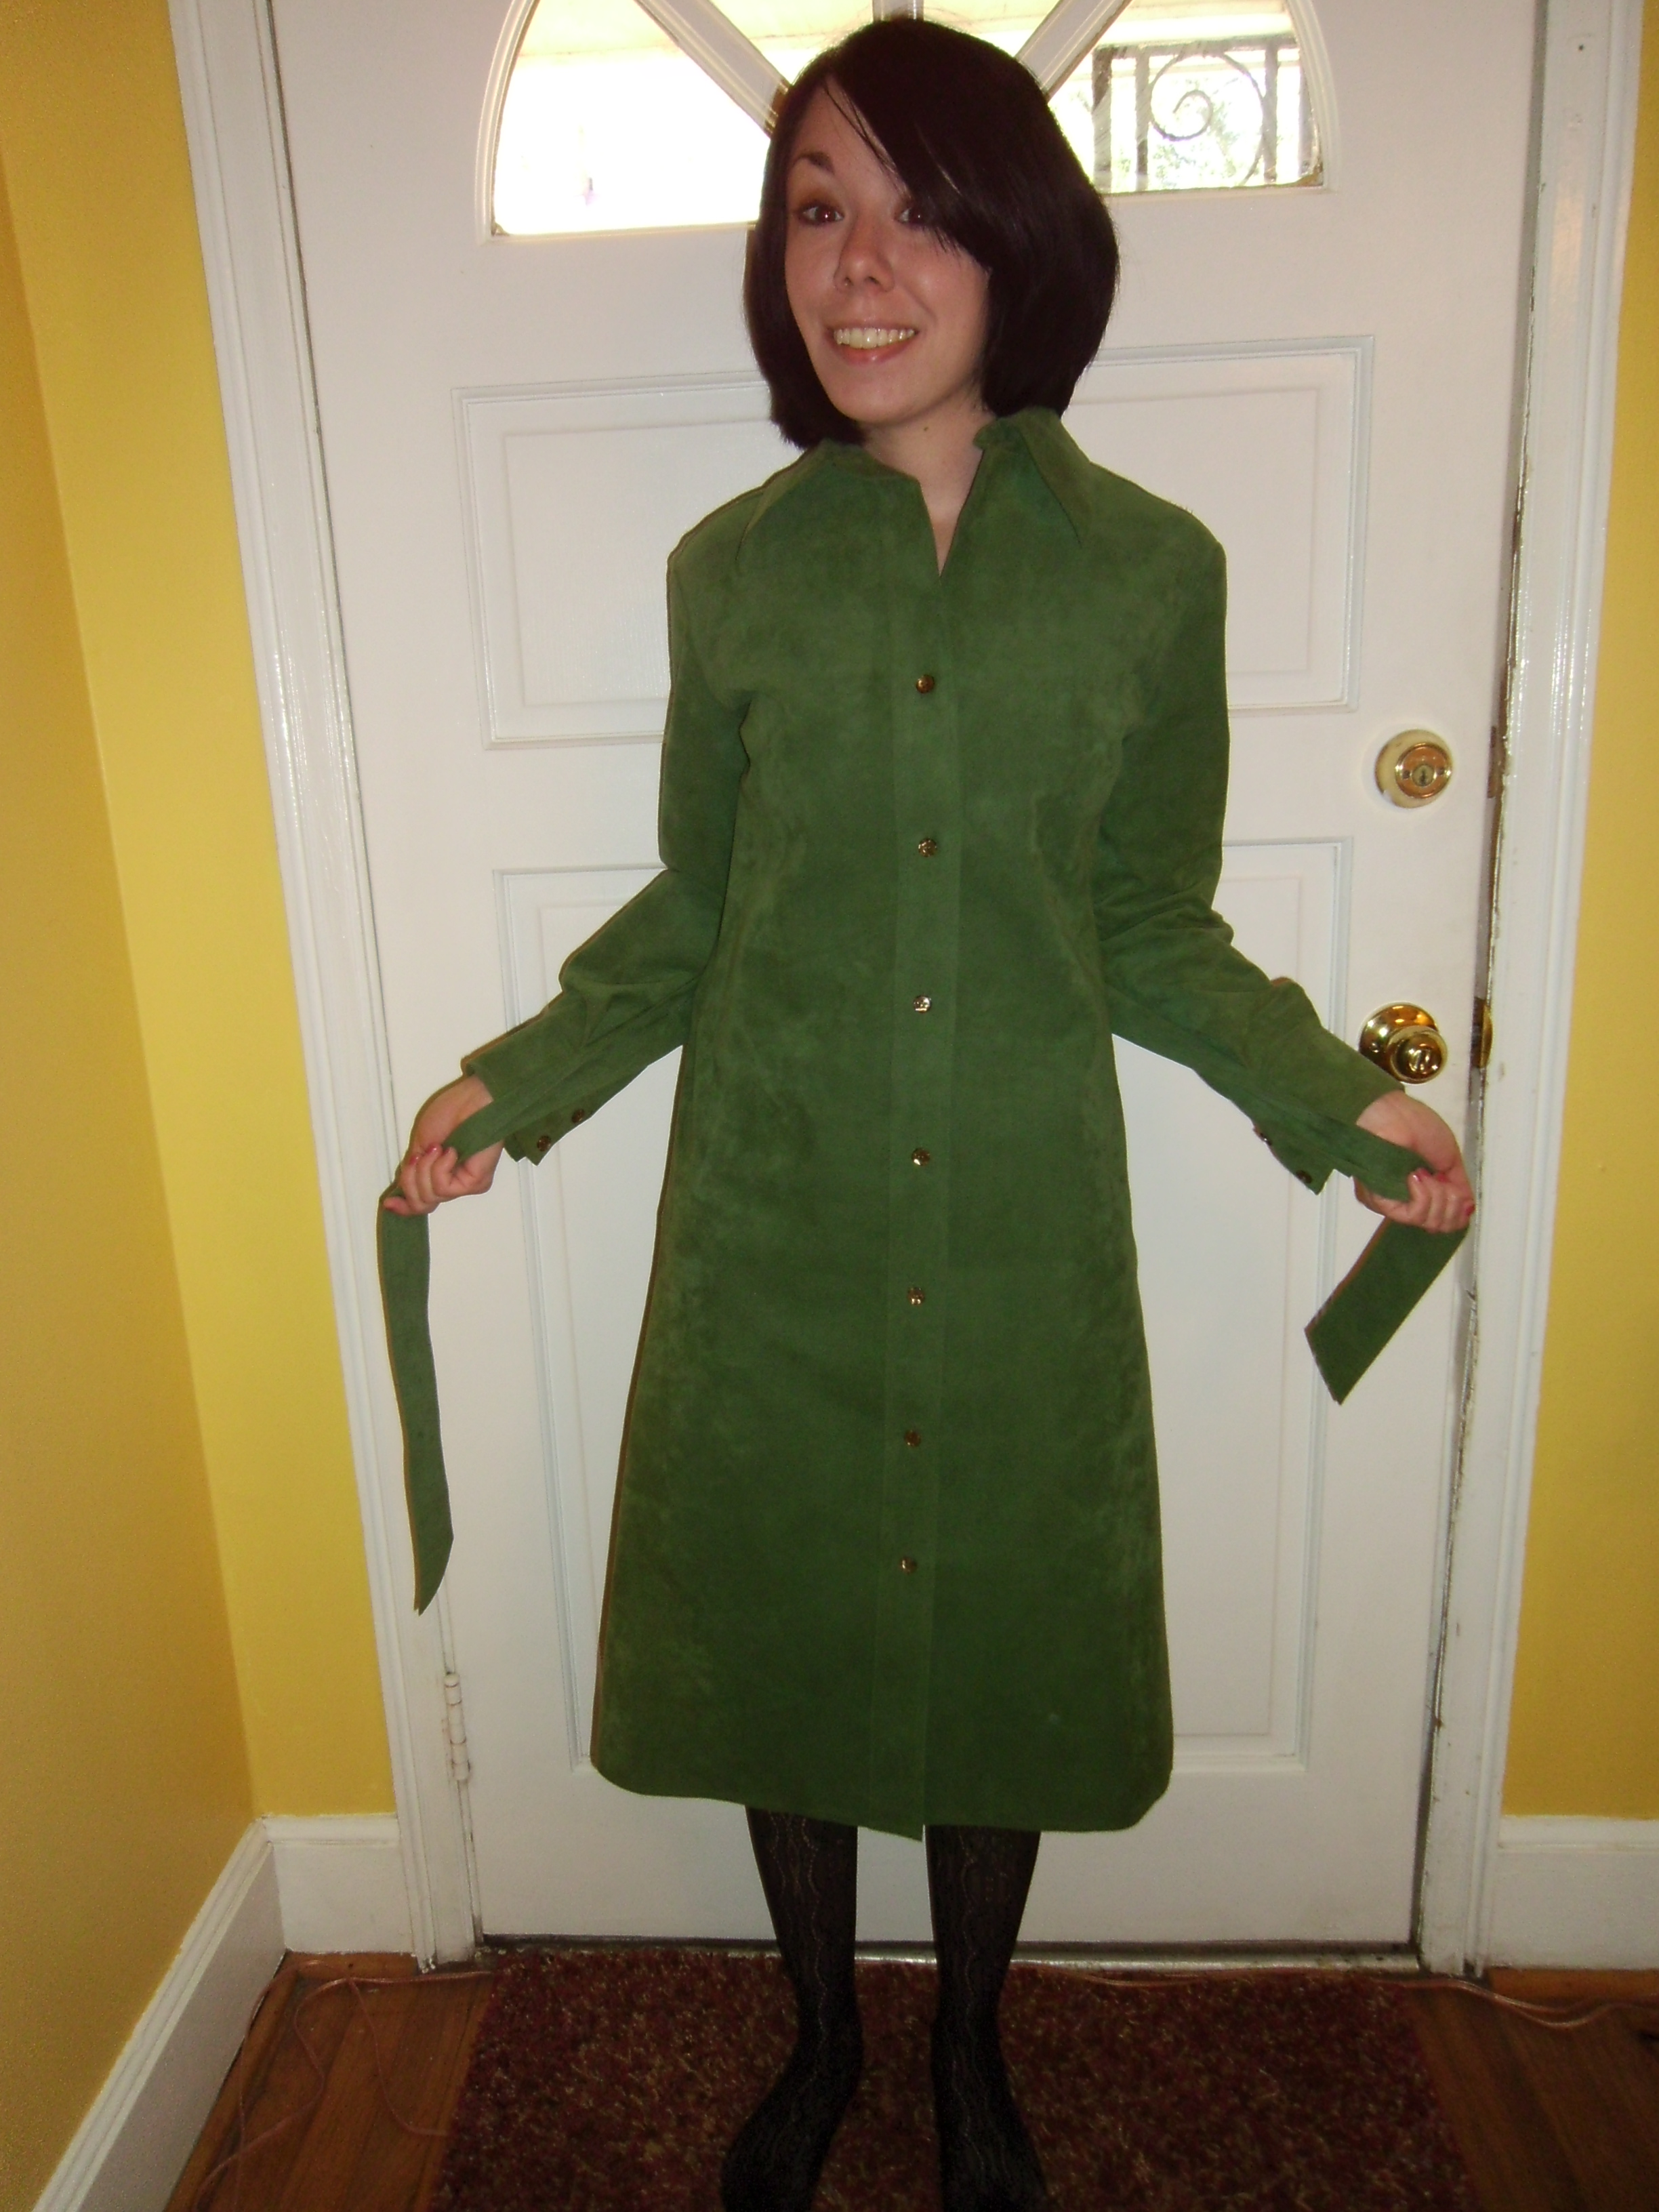 Day 156: Feeling Green Dress 2